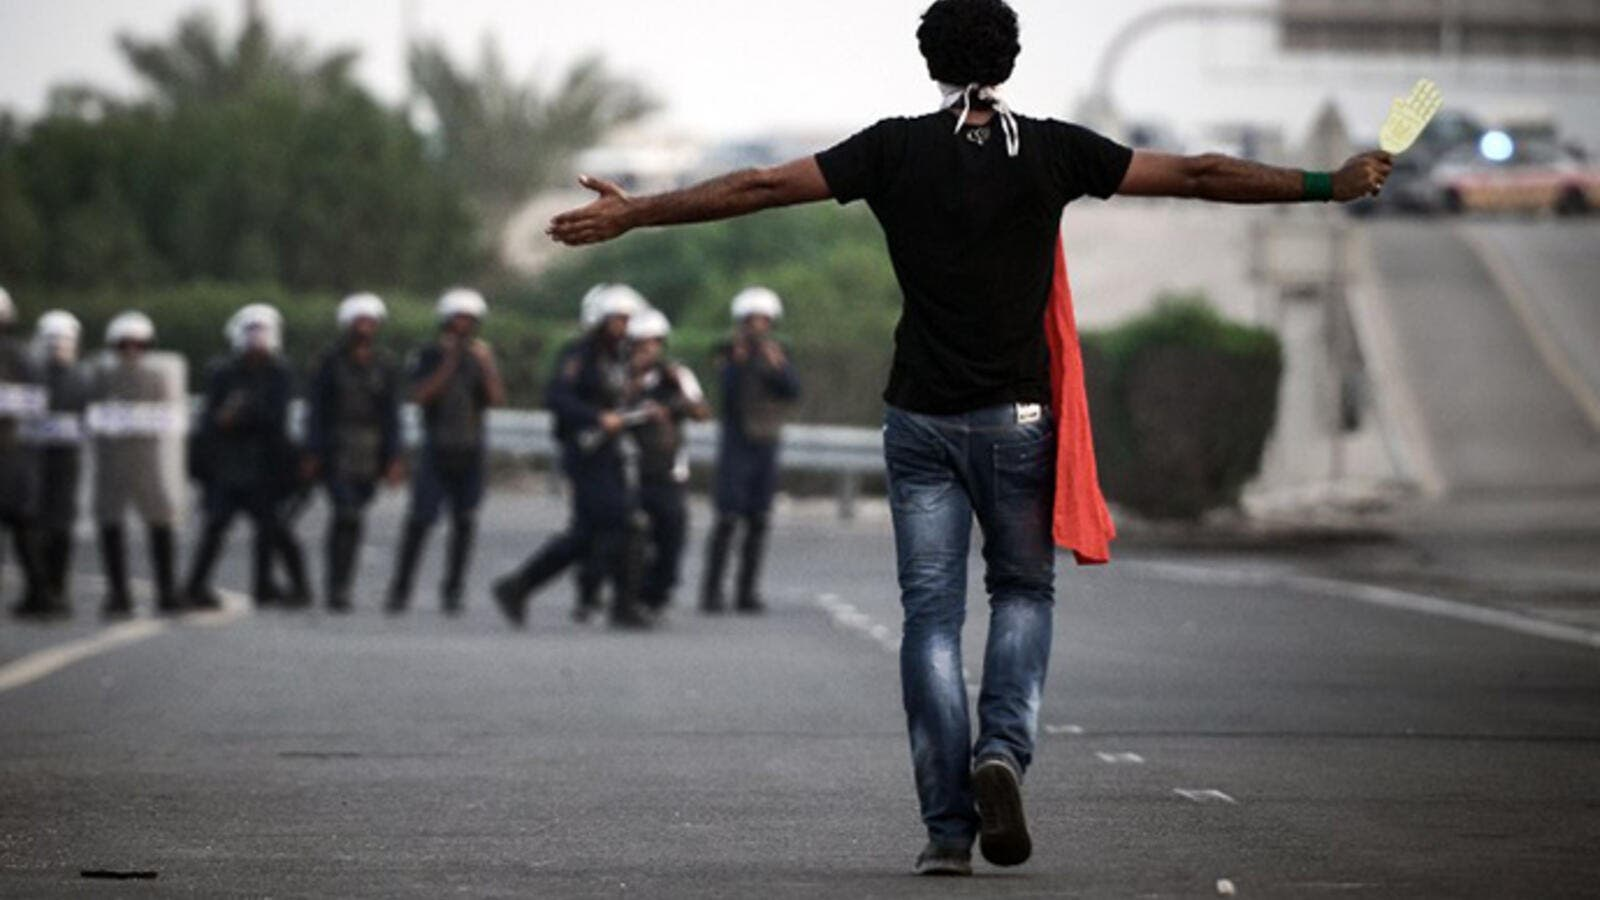 A Bahraini protester walks towards local riot police. (AFP/Mohammed Al Shaikh)